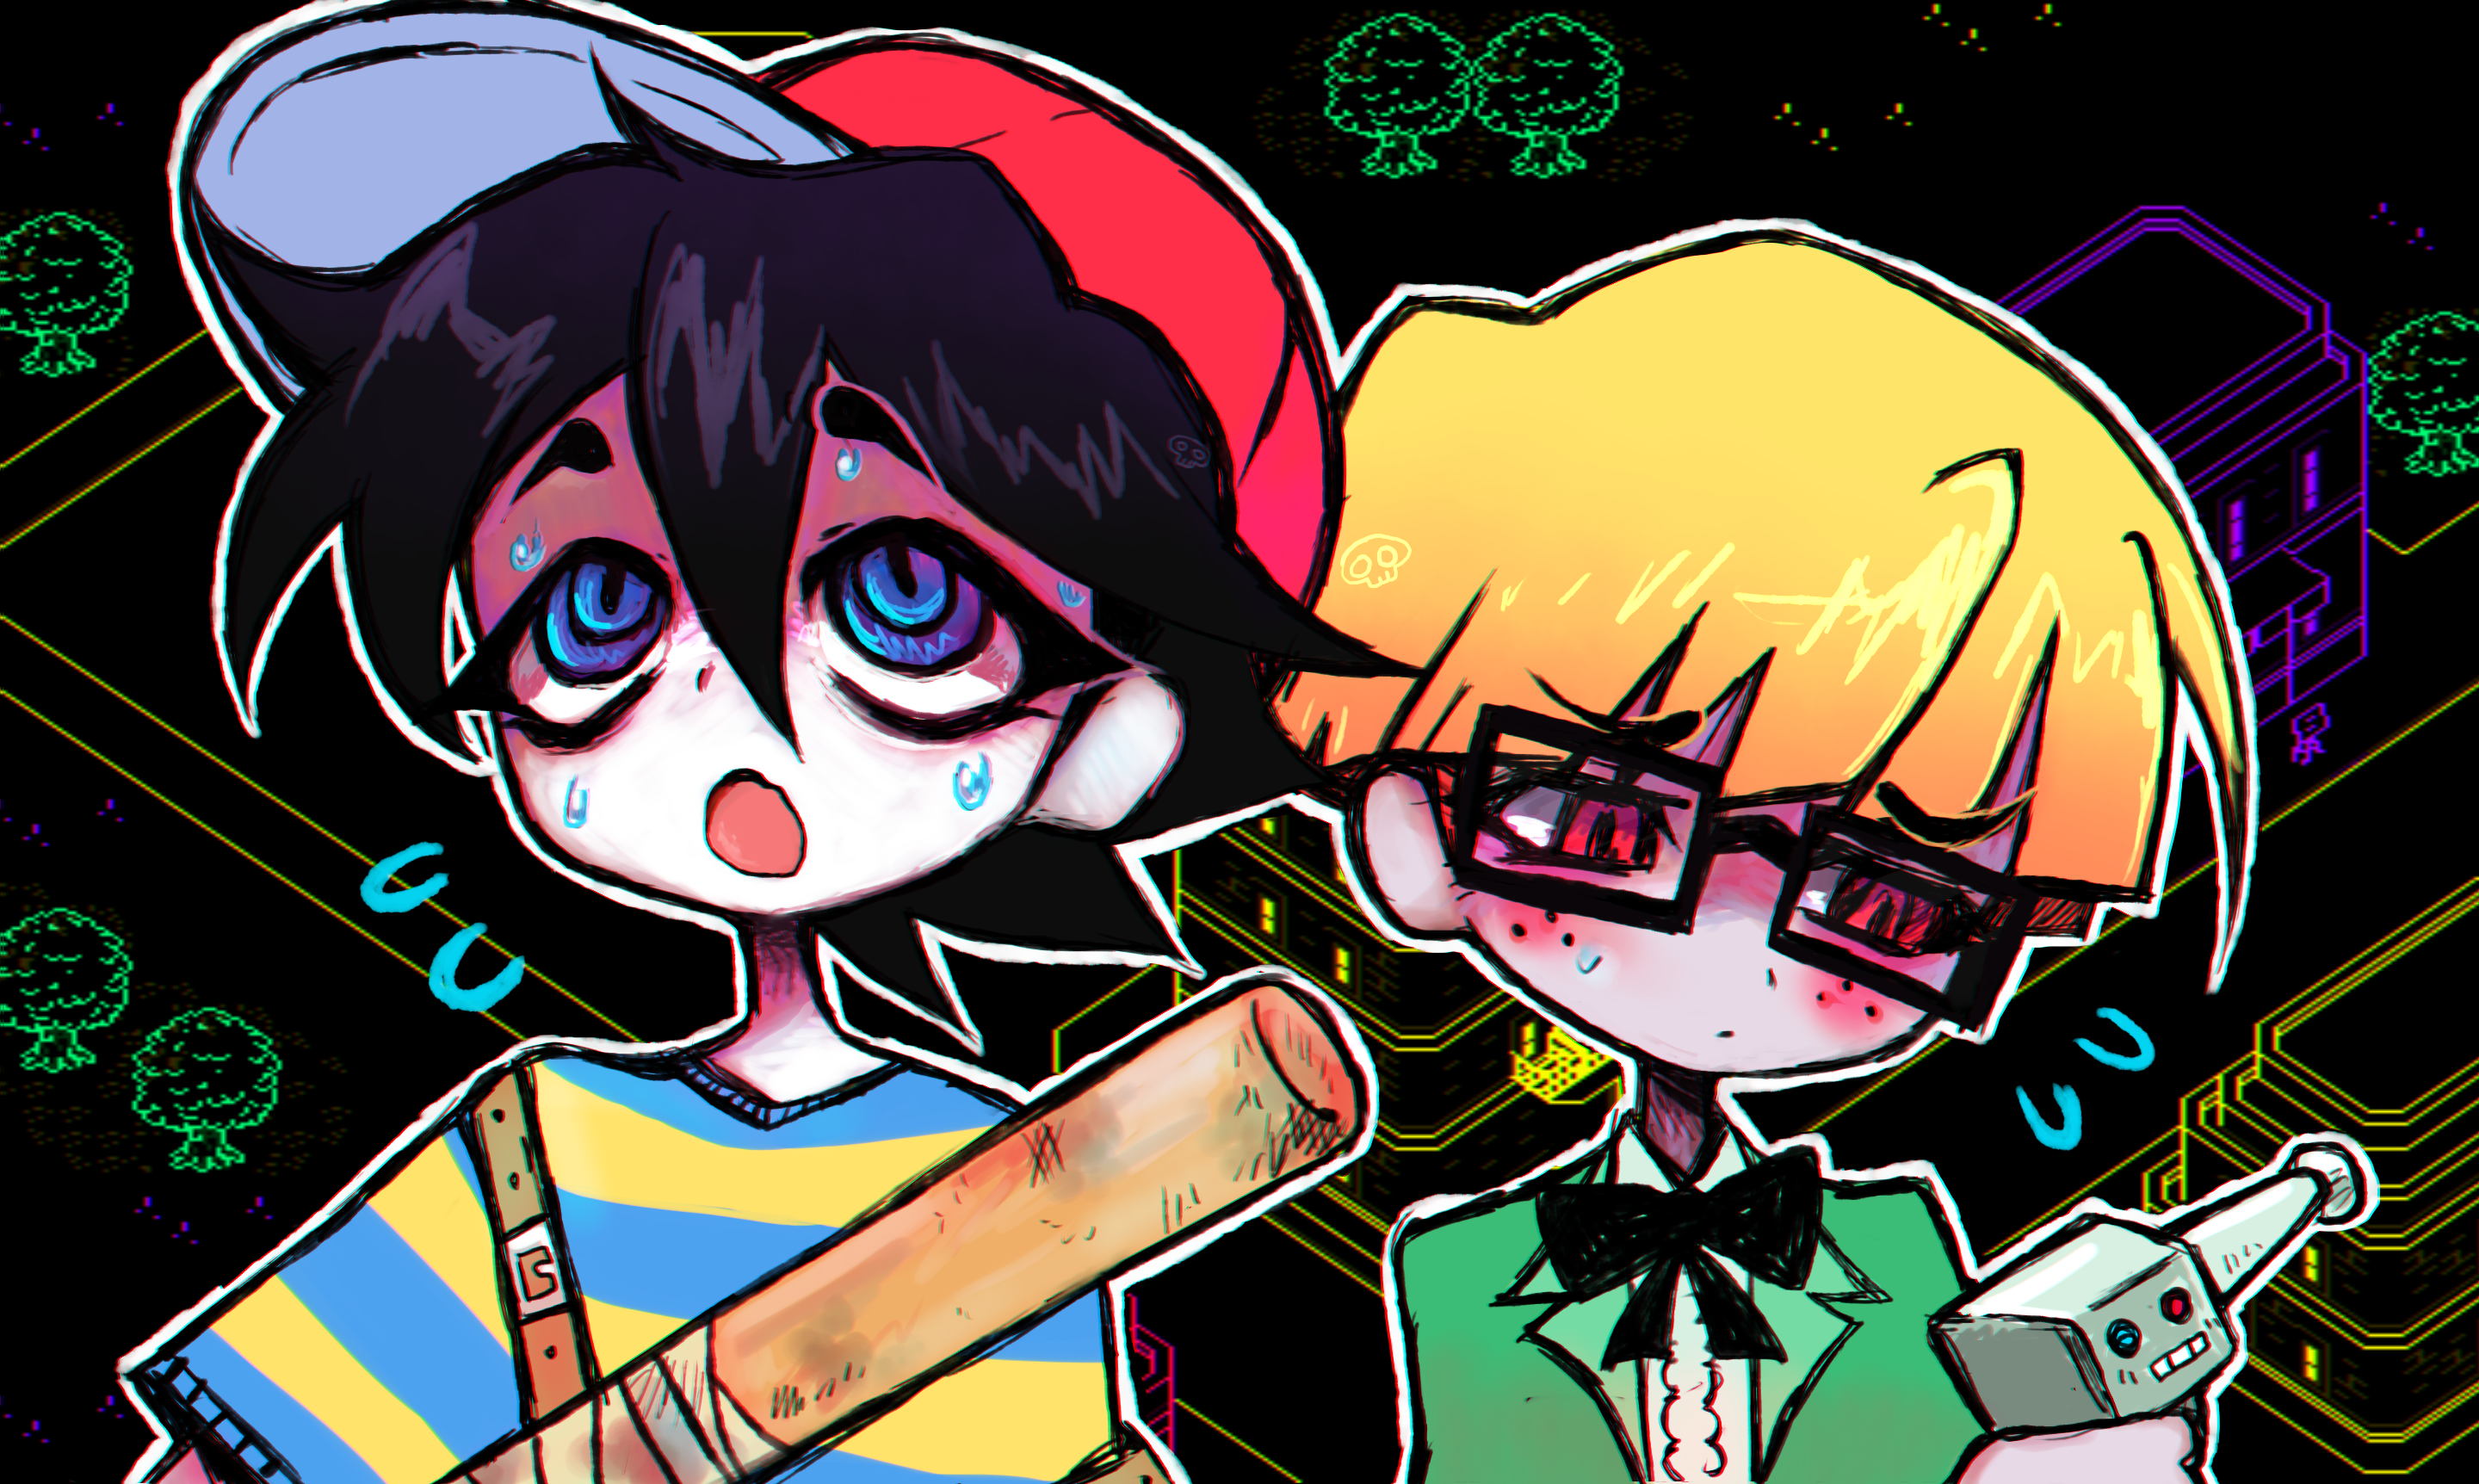 Ness and Jeff Moonside HD Wallpaper Background Image 2880x1724 2880x1724